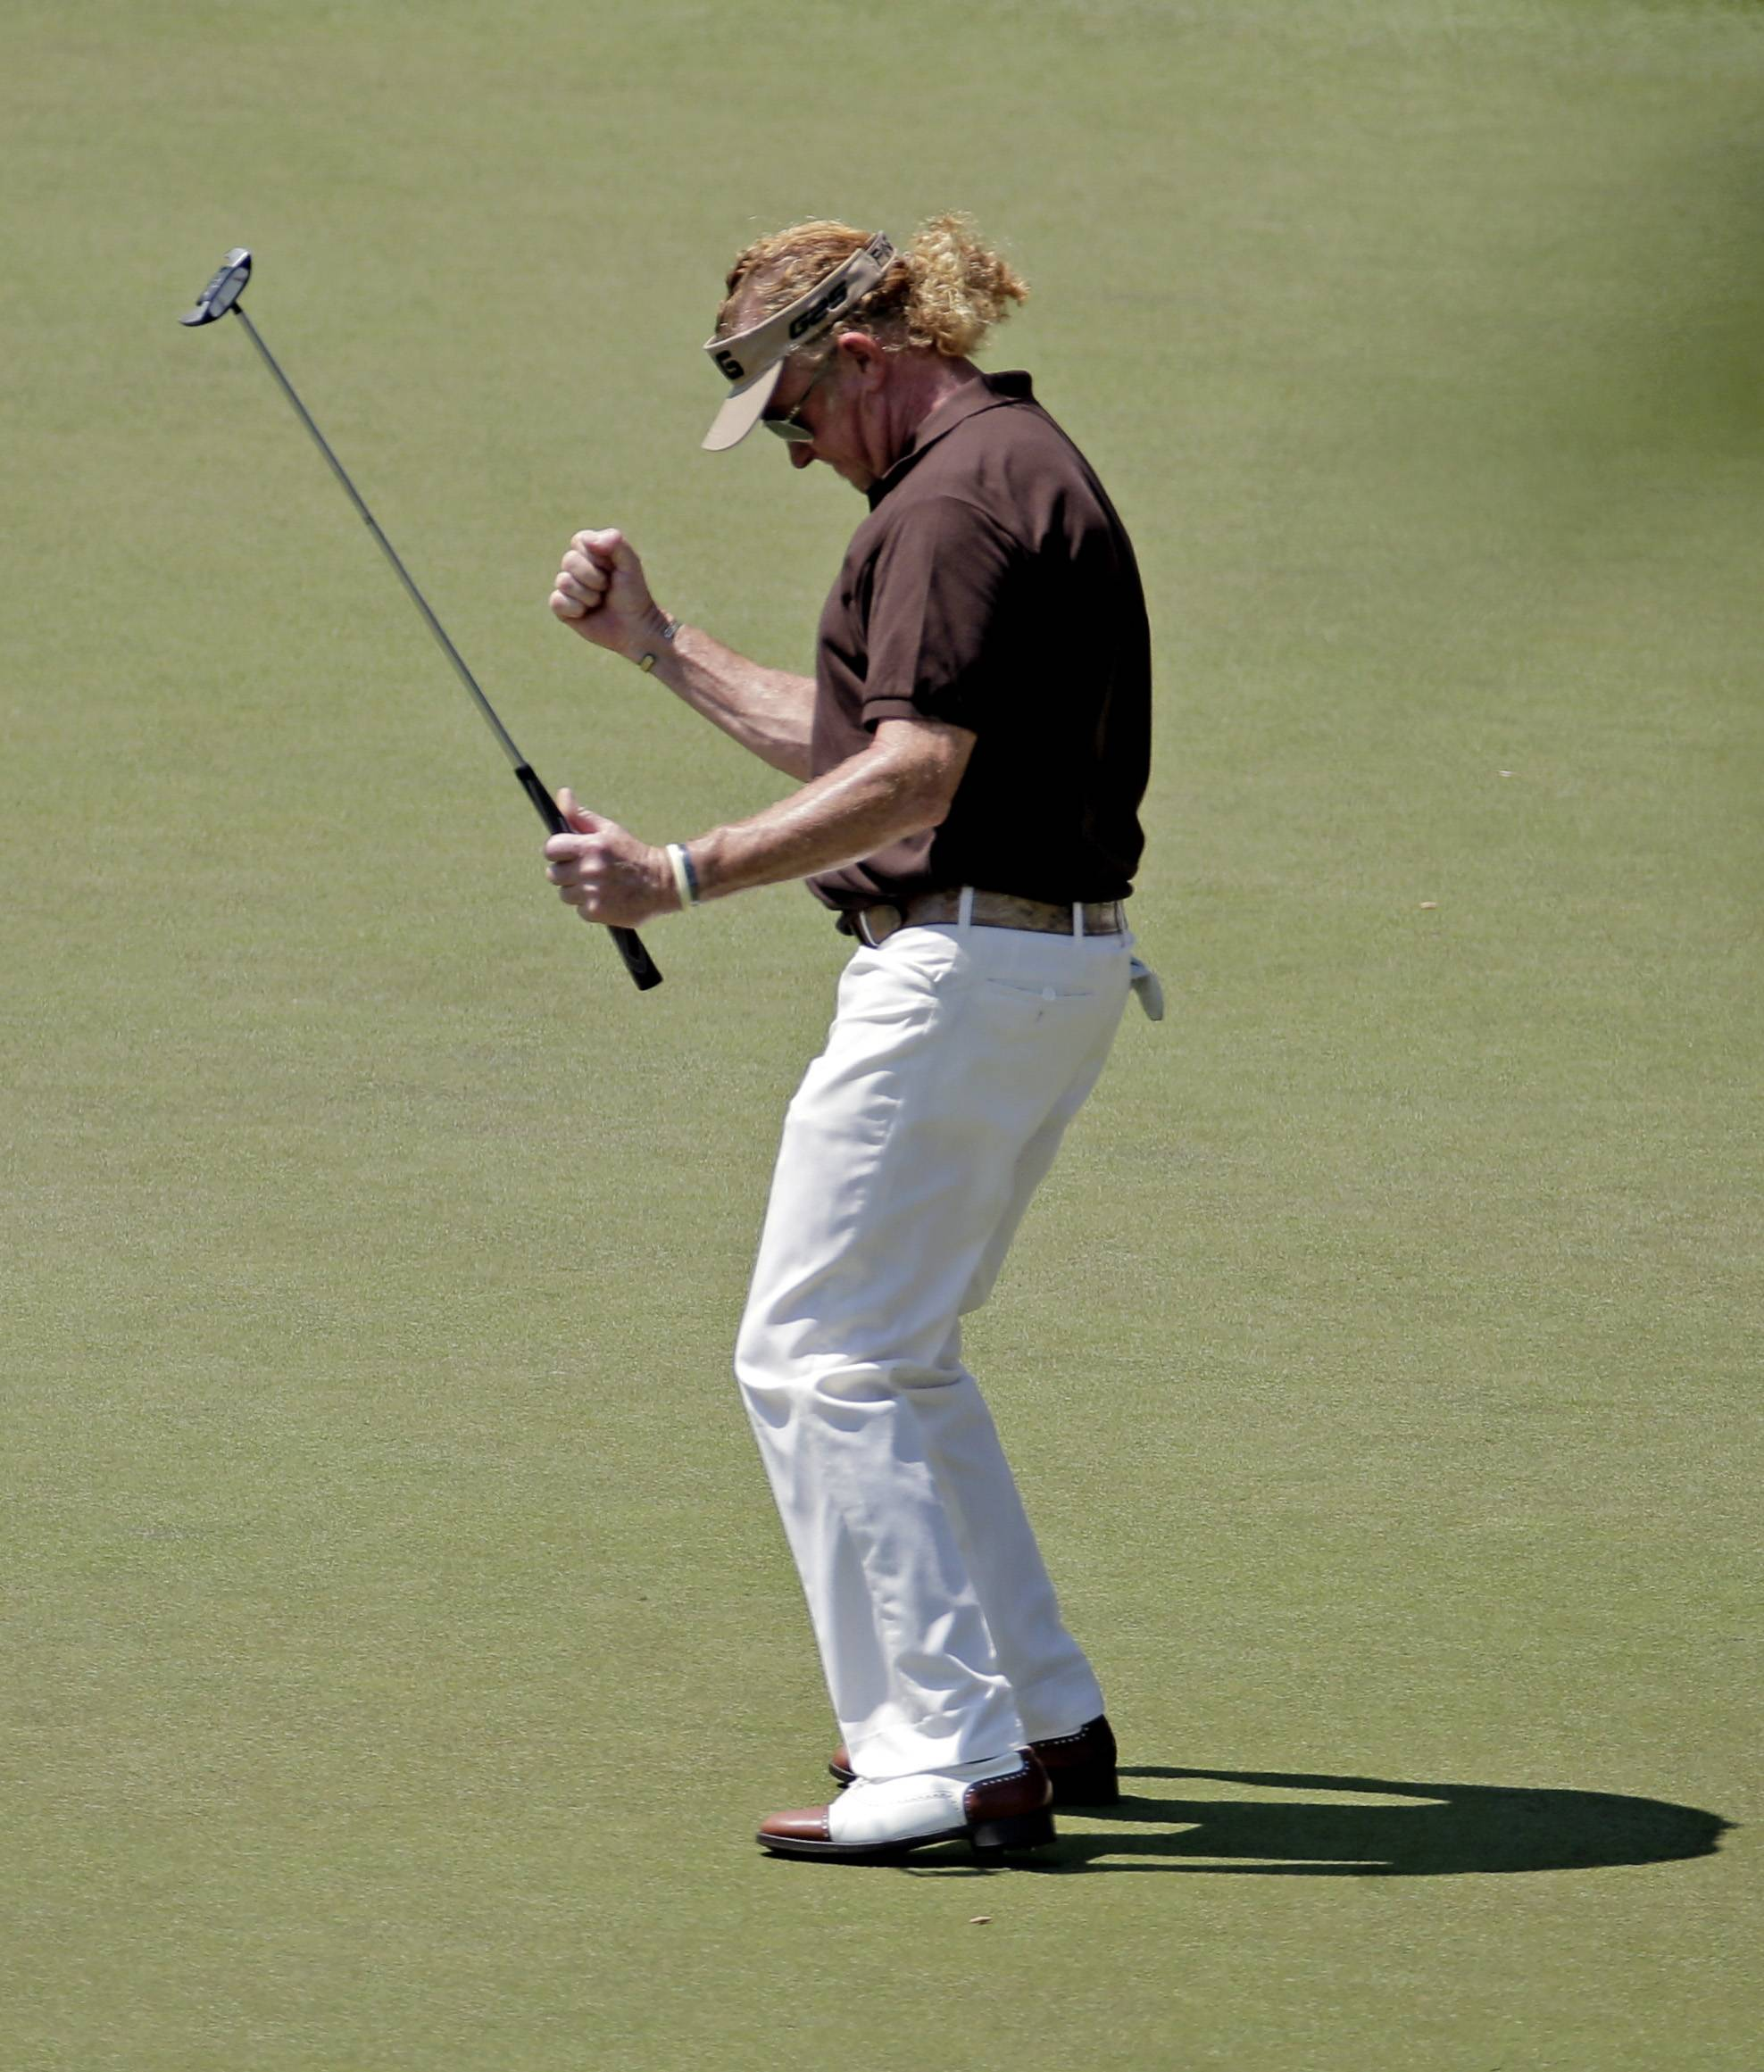 Miguel Angel Jimenez, of Spain, pumps his fist after a birdie on the 16th hole during the third round of the Masters golf tournament Saturday, April 12, 2014, in Augusta, Ga. (AP Photo/Charlie Riedel)